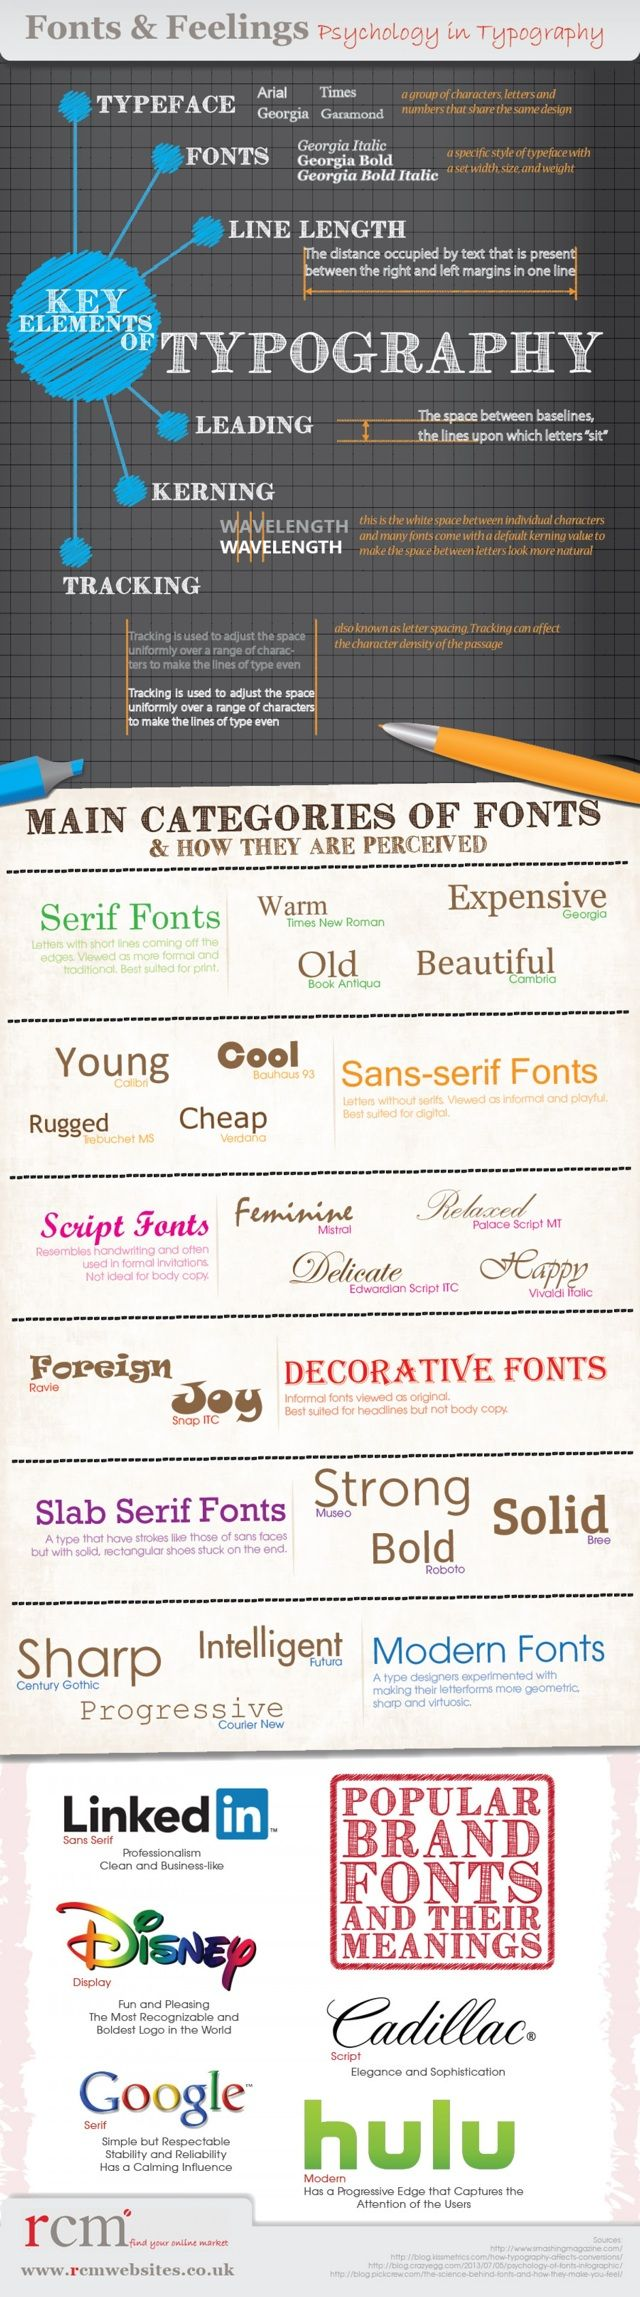 The Psychology of Typography | Fonts, Essentials and Typography